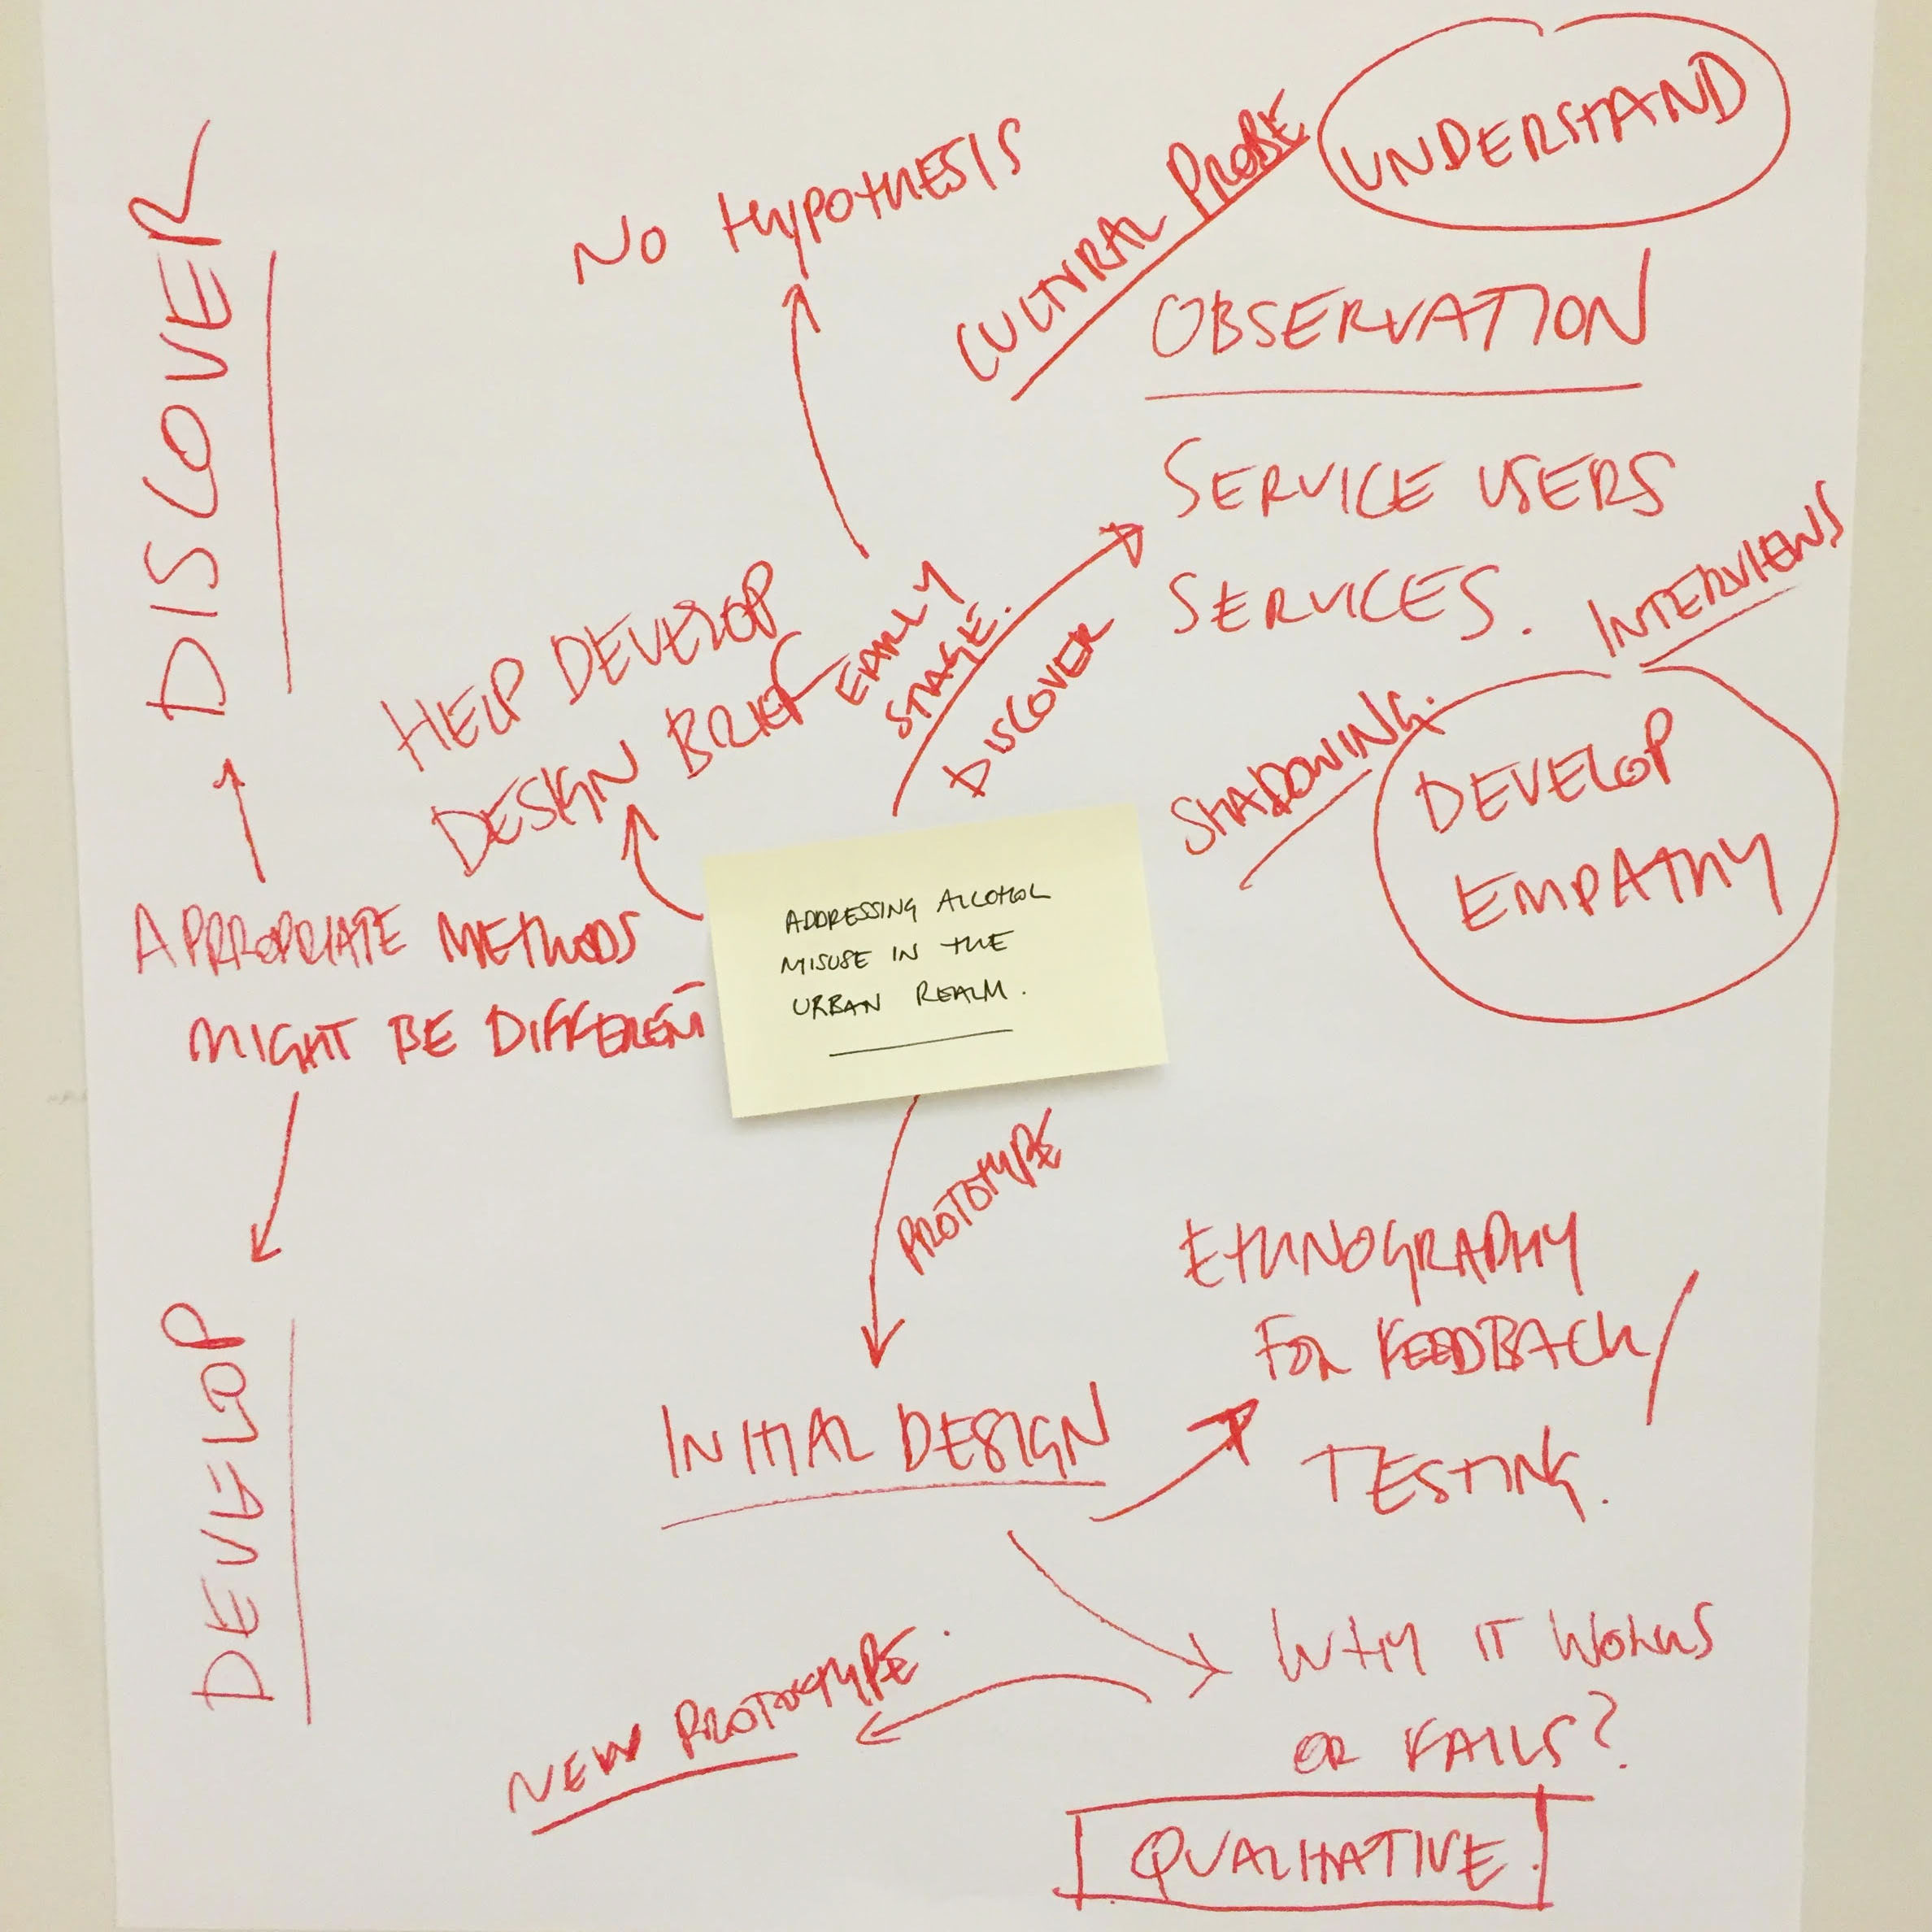 Mapping ideas at the LDoc Design Ethnography workshop